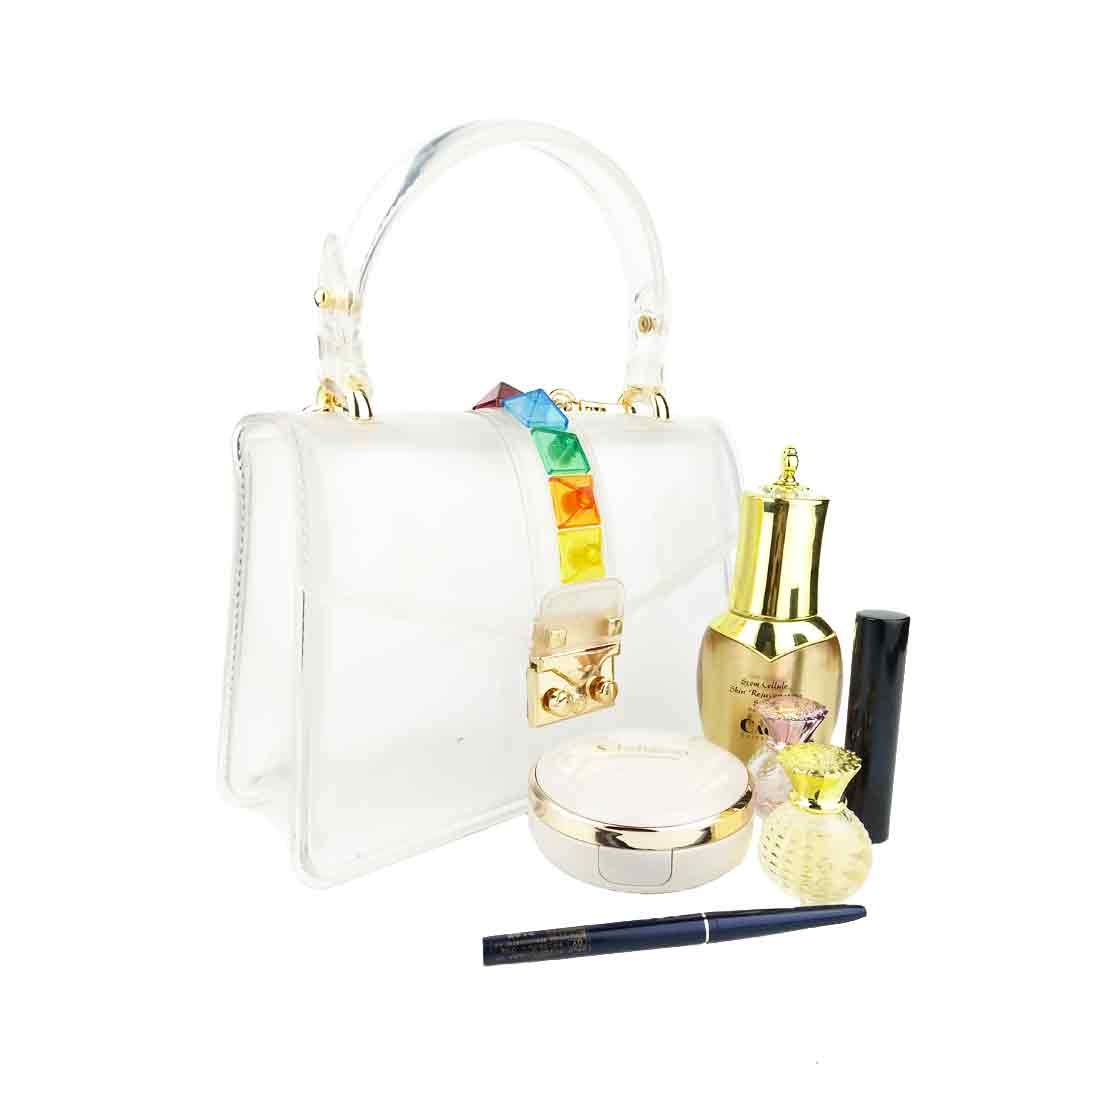 Small Clear Bag Crossbody Ladies Candy Color Jelly Plastic PVC Handbag